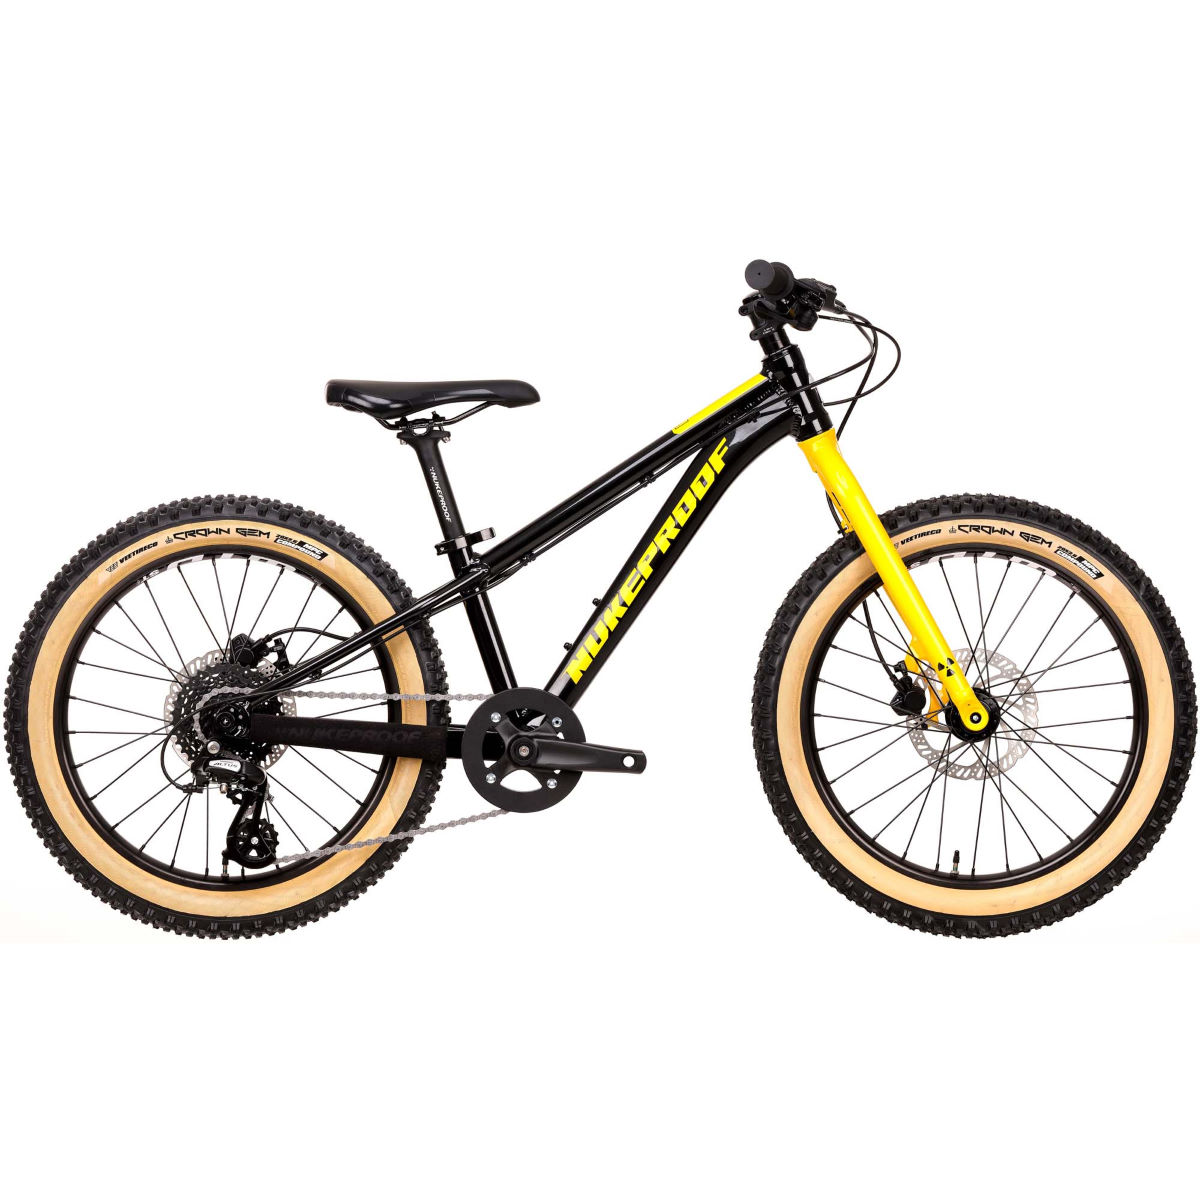 Nukeproof Nukeproof Cub-Scout 20 Sport Kids Bike (2020)   Junior Bikes